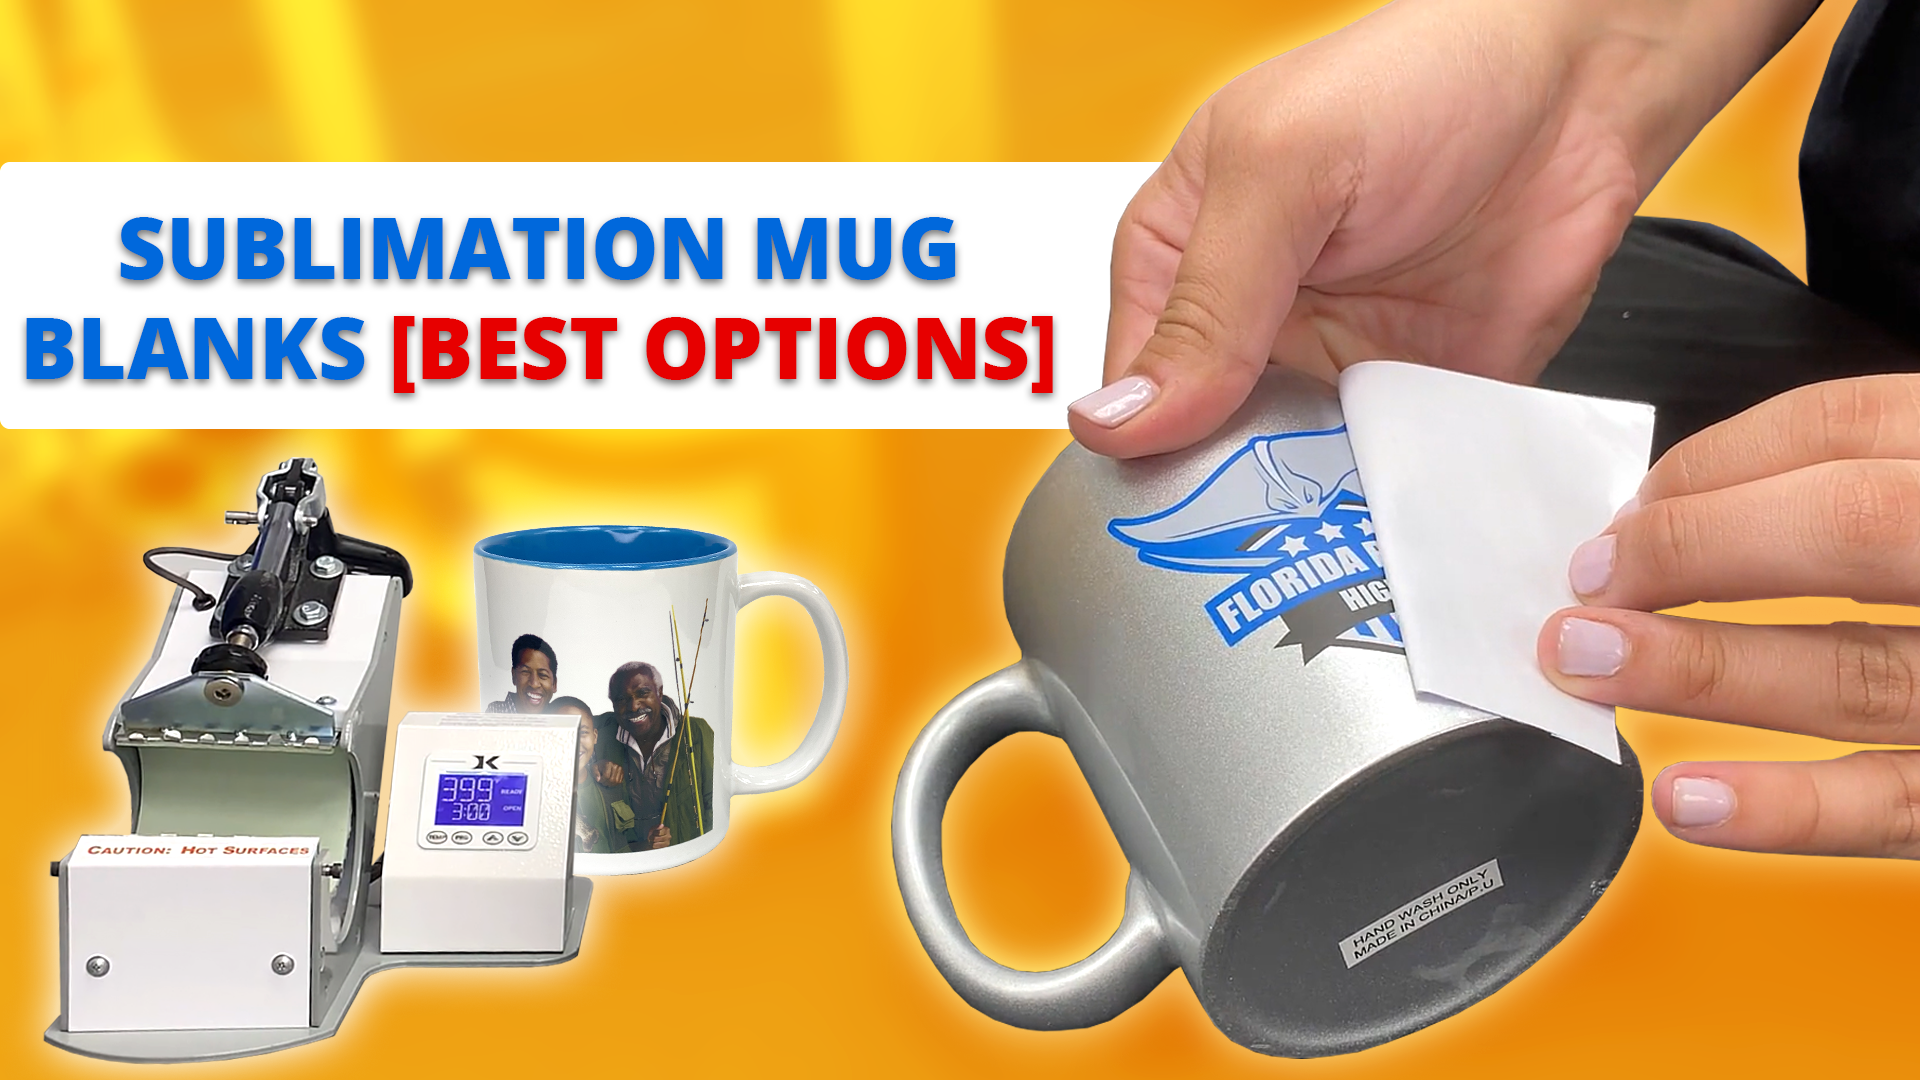 sublimation mug blanks best options